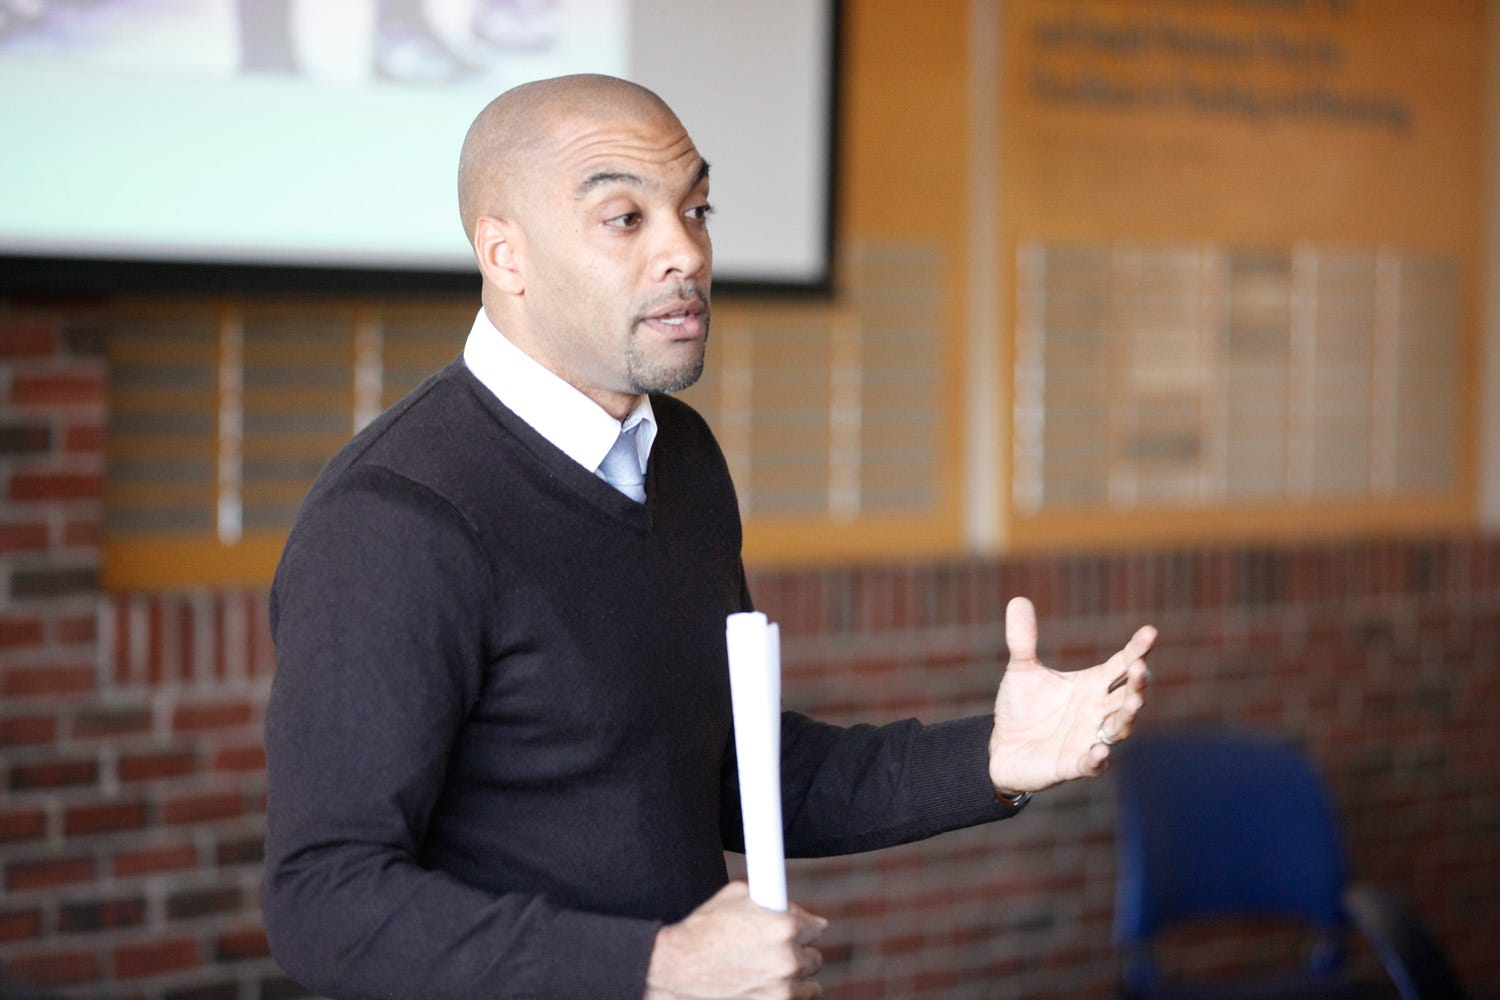 Chad Williams, chair of the African American Studies Department at Brandeis University in Massachusetts, gives a lecture. Williams is one of the scholars behind the Charleston Syllabus, which he said followed in the footsteps of the work of other Black scholars